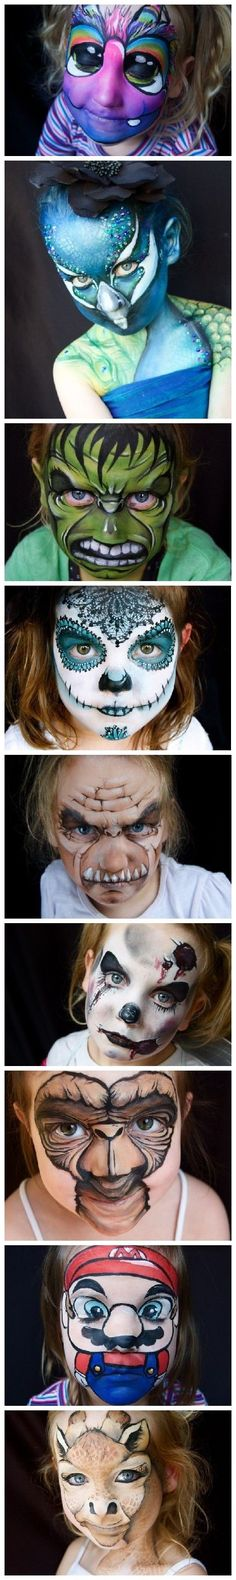 Various Child Full Face Makeup Ideas: